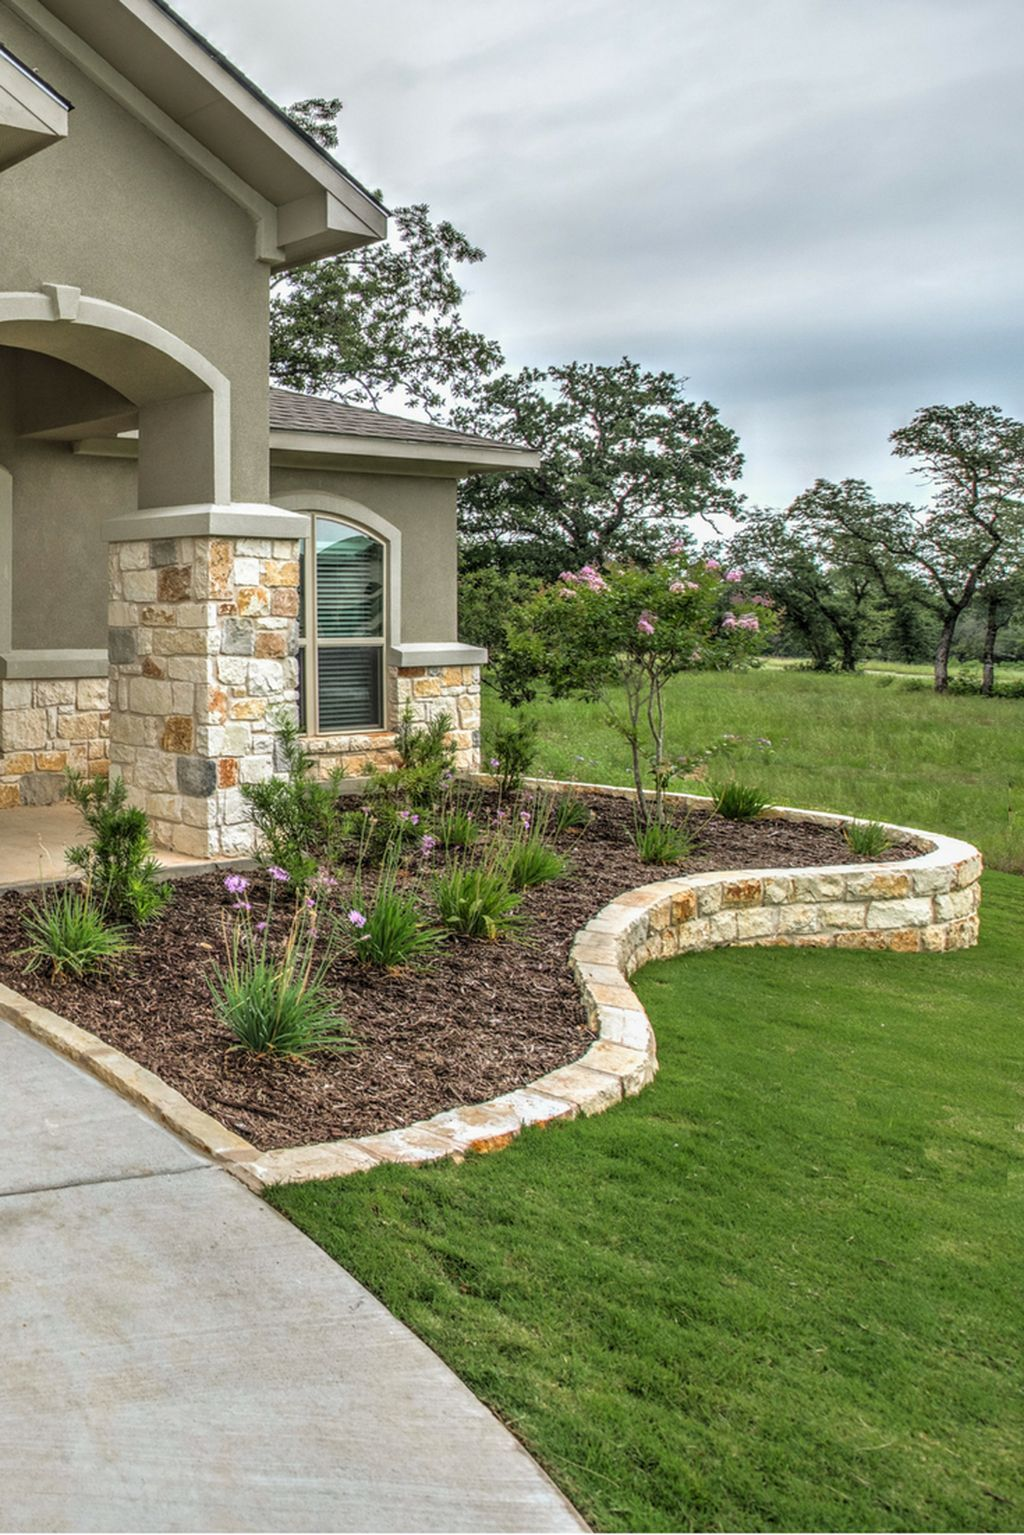 37 Gorgeous Front Yard Retaining Wall Ideas Perfect For Your Front House Trendehouse Front Yard Garden Design Front Yard Landscaping Design Backyard Landscaping